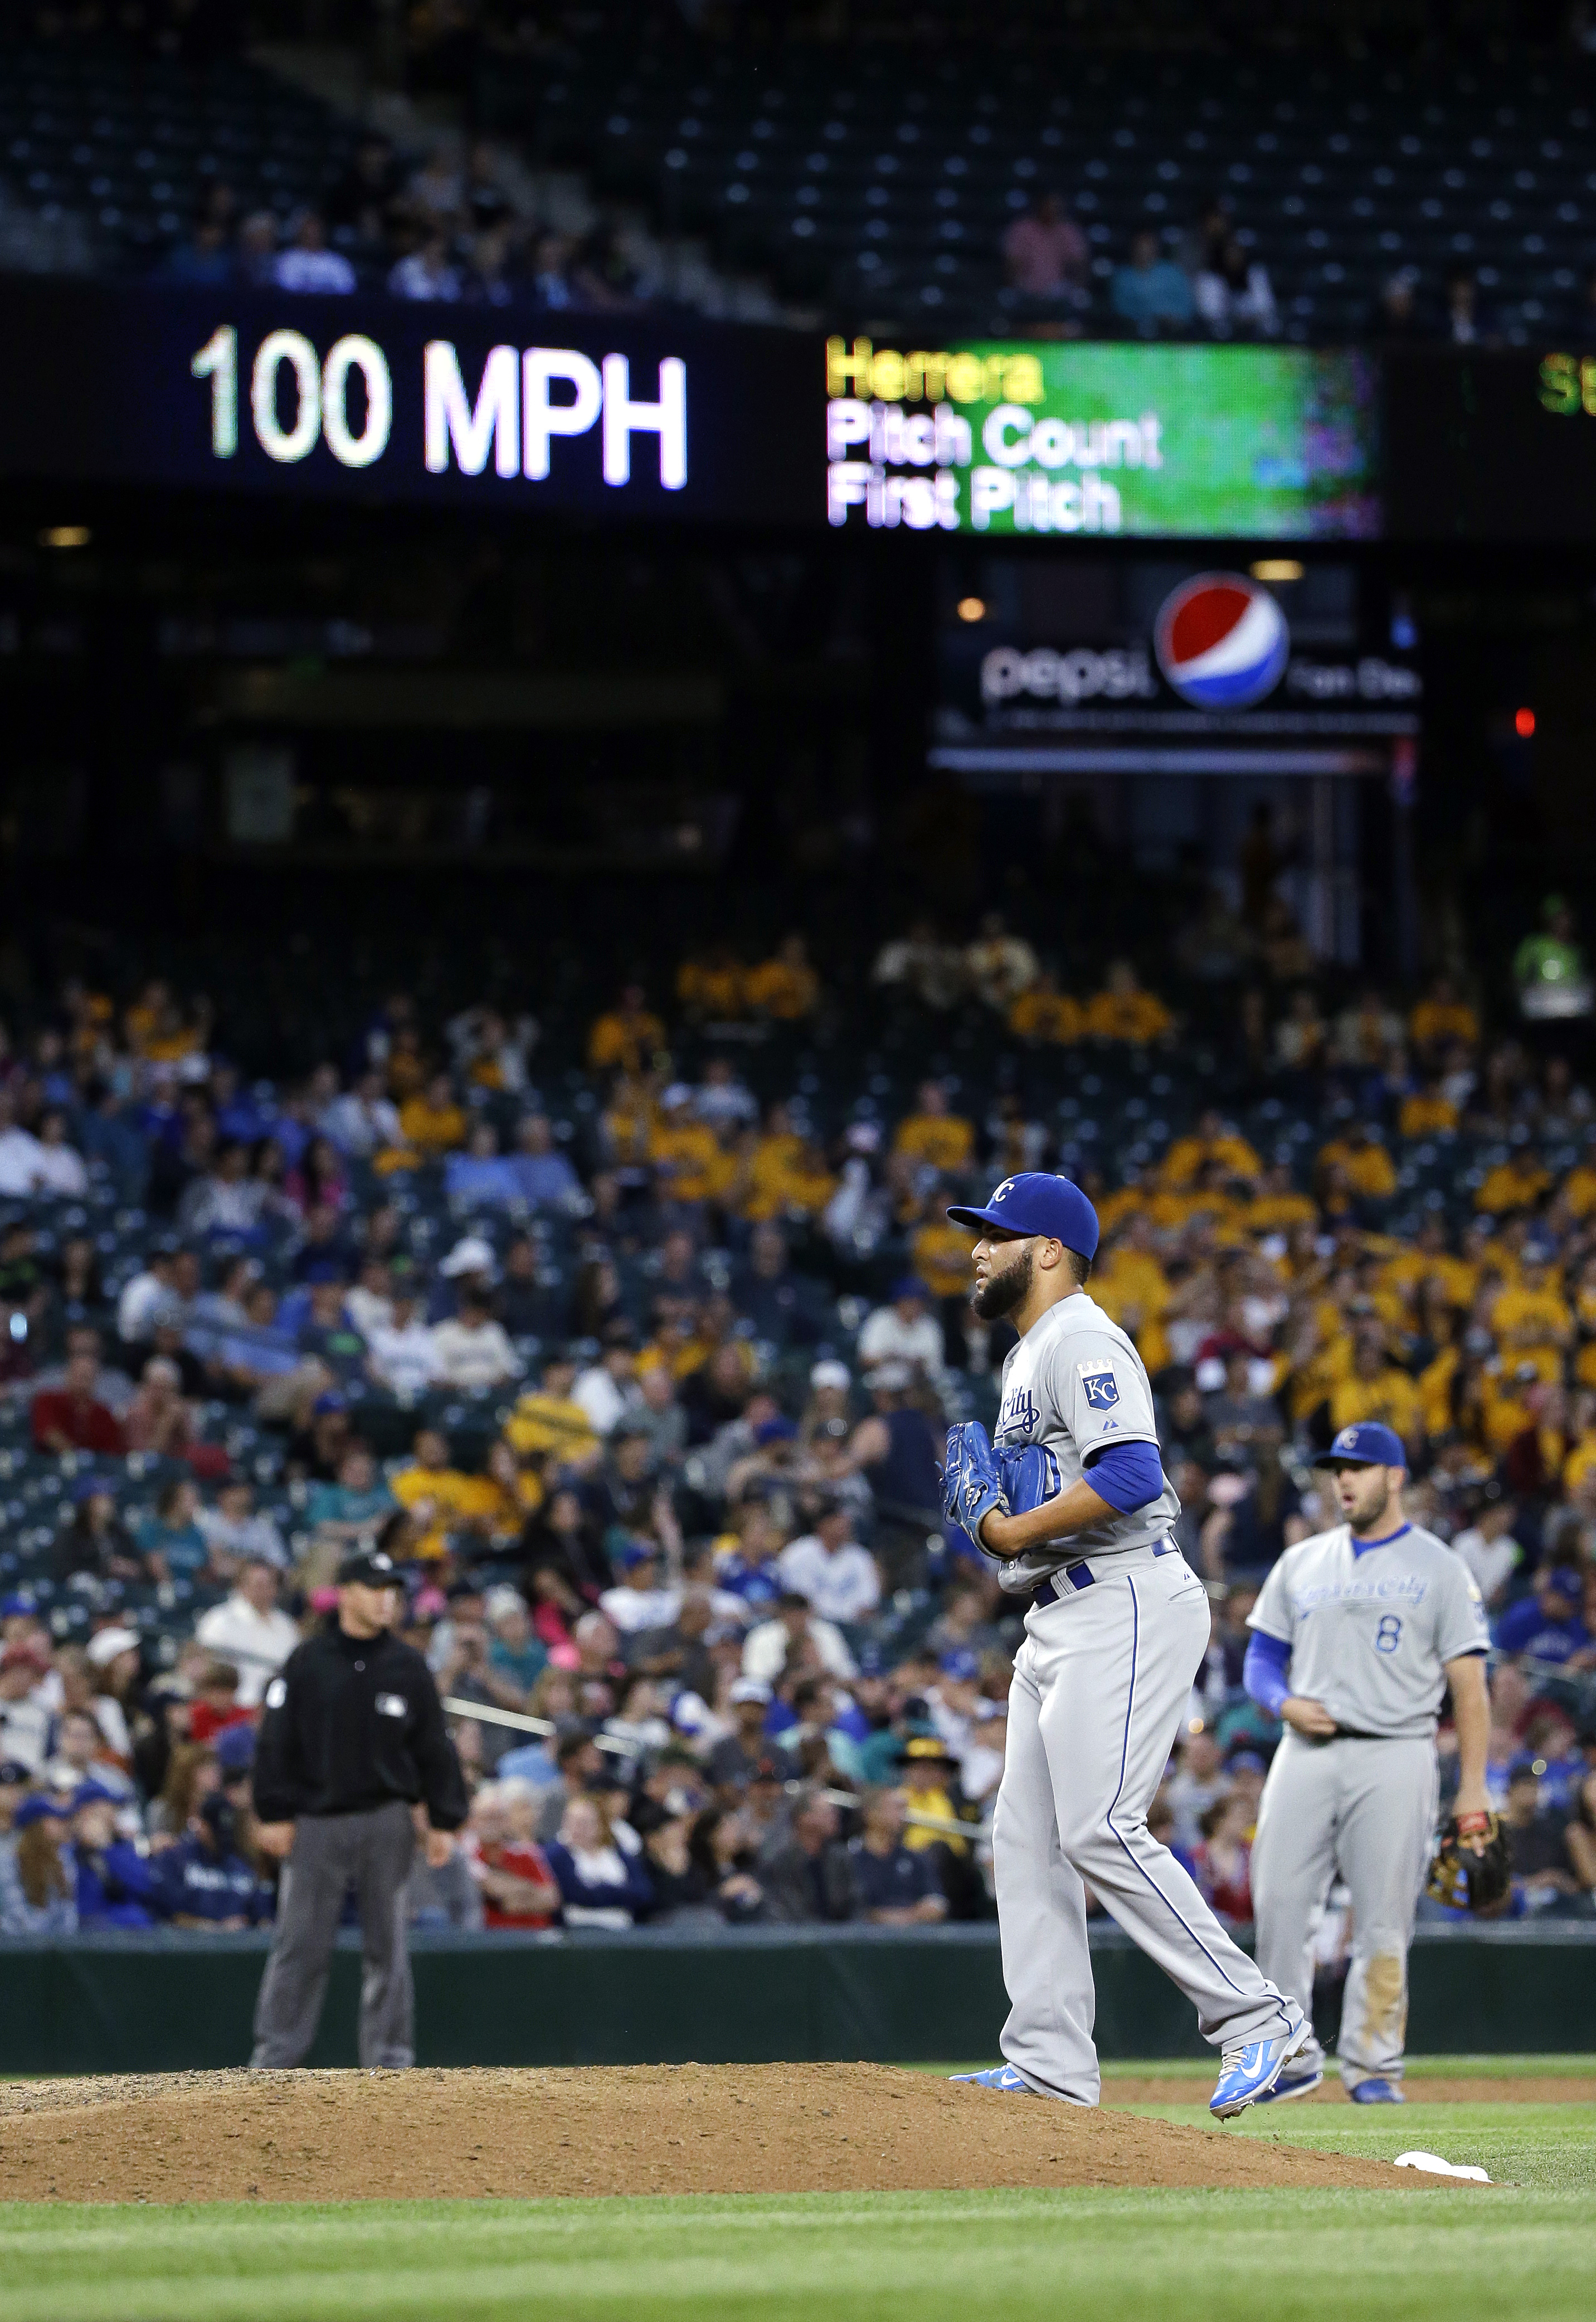 Kansas City Royals relief pitcher Kelvin Herrera walks back to the mound after throwing a 100-mph fastball against the Seattle Mariners in the seventh inning of a baseball game Monday, June 22, 2015, in Seattle. (AP Photo/Elaine Thompson)